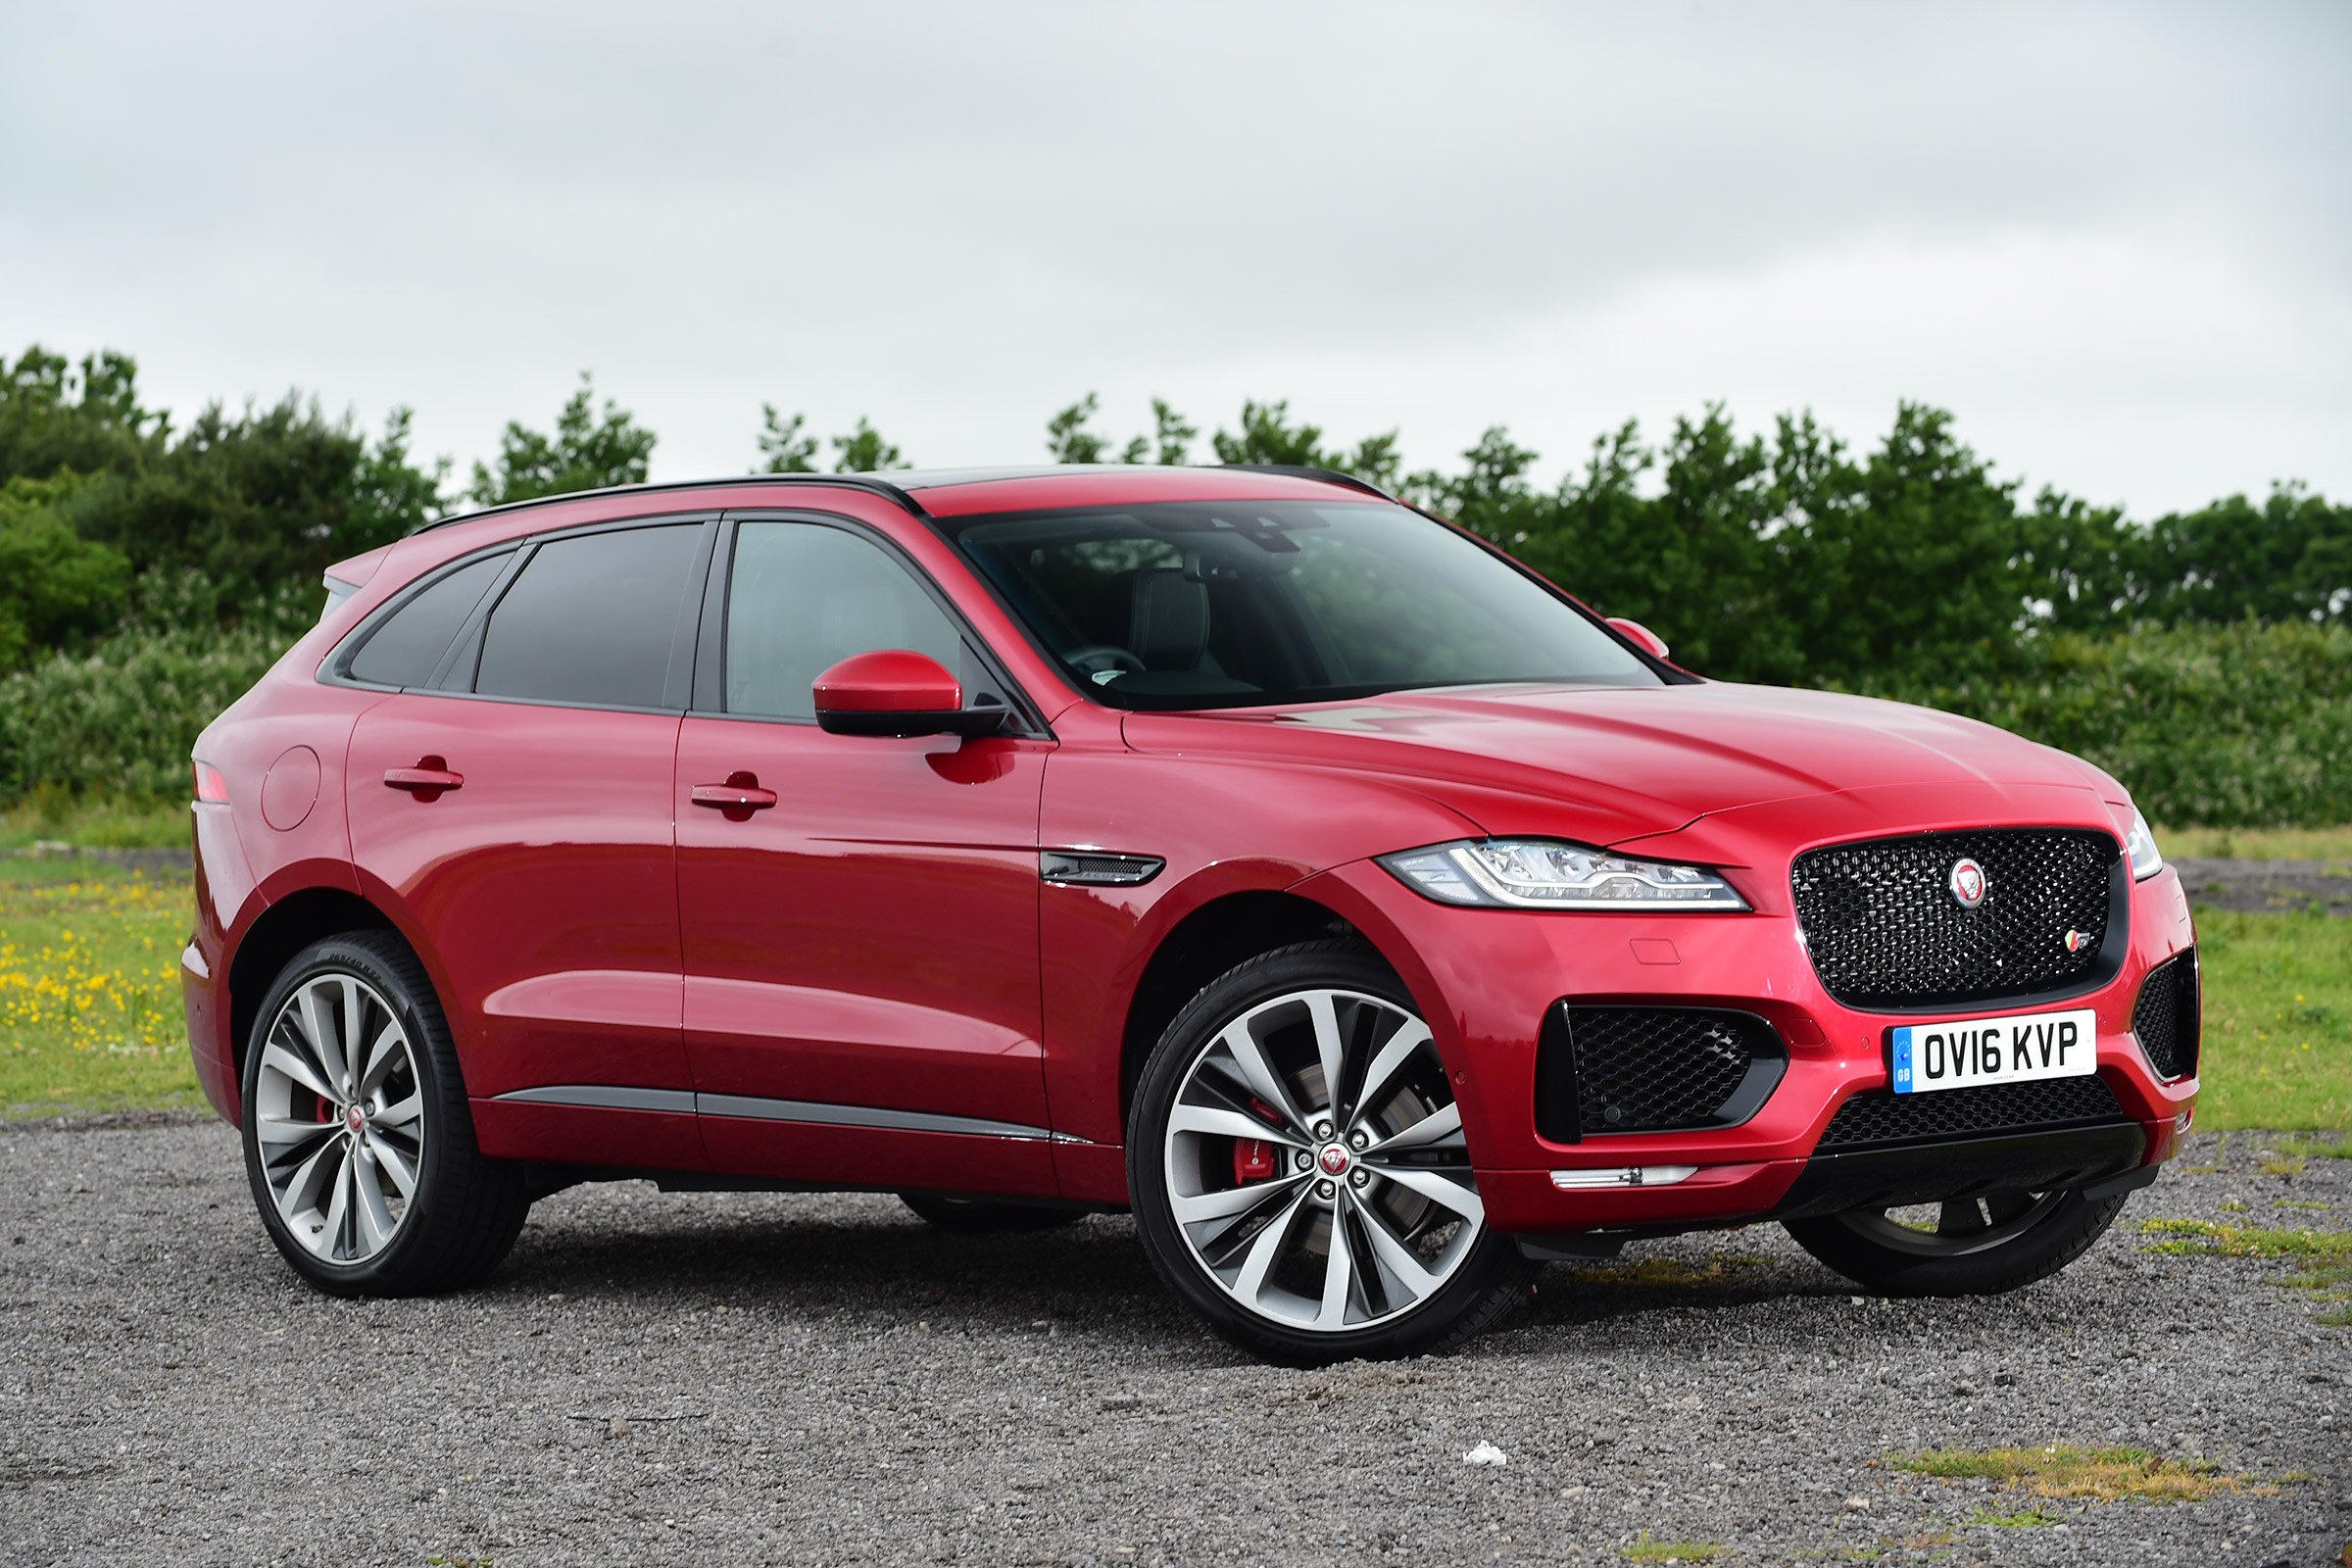 Jaguar Small Suv >> Jaguar F-Pace S 30d AWD UK-spec cars suv red 2016 wallpaper | 2400x1600 | 998208 | WallpaperUP